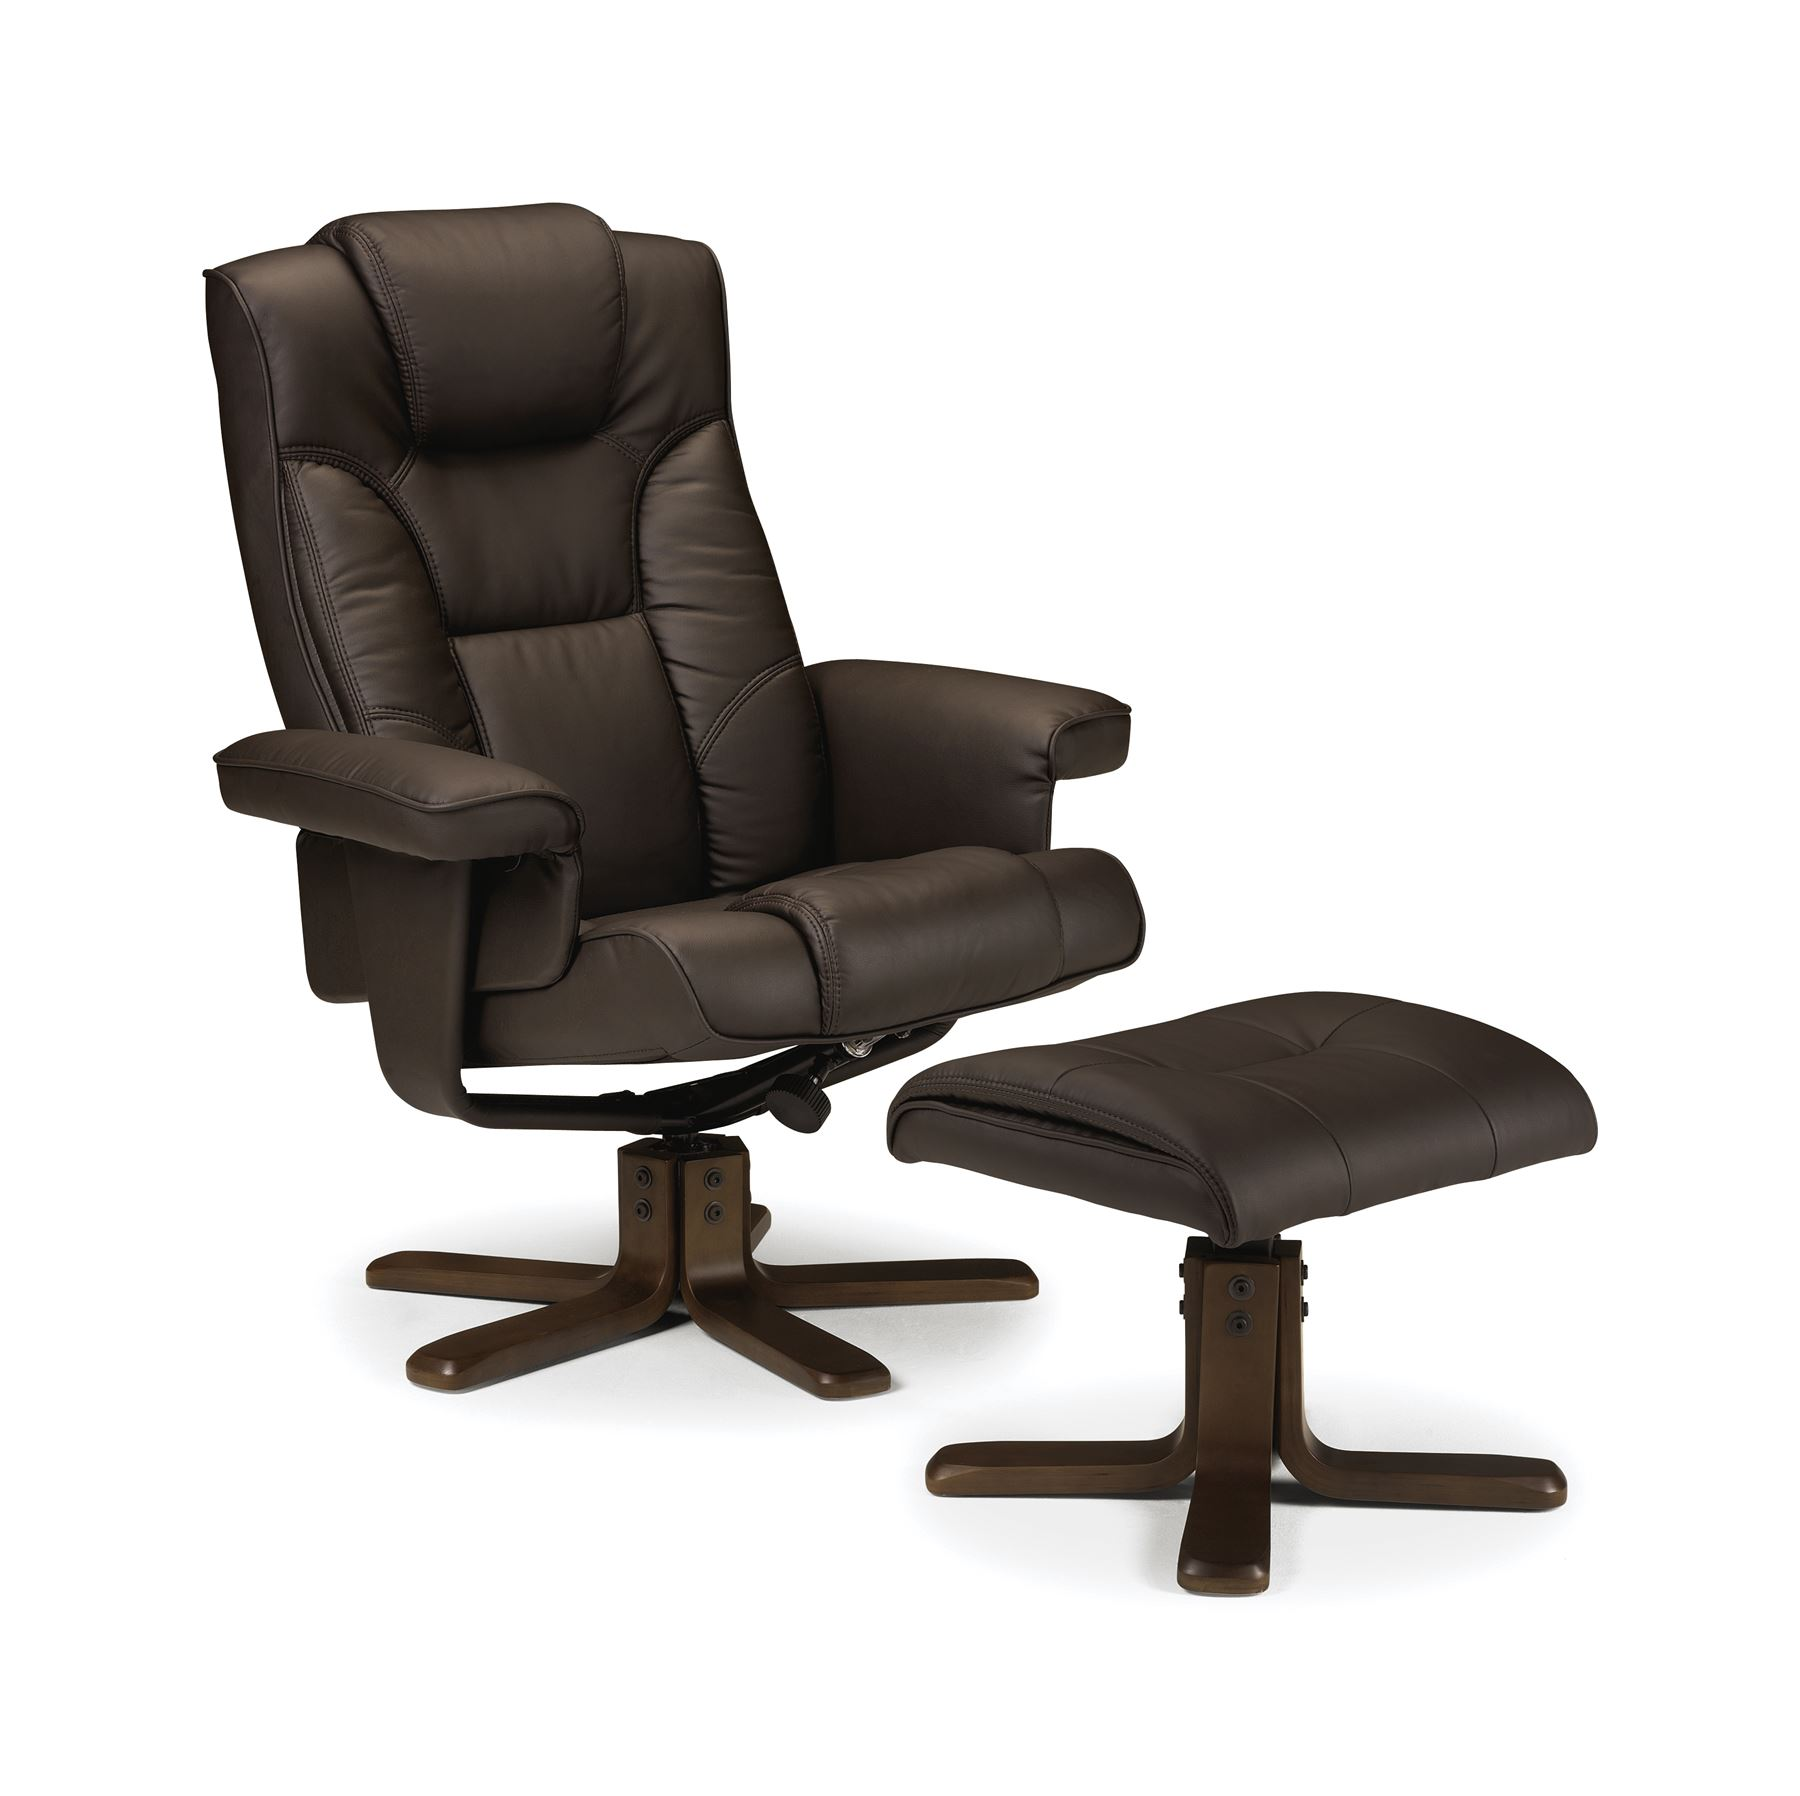 Julian Bowen Malmo Manual Swivel Recliner & Stool in Brown Faux Leather